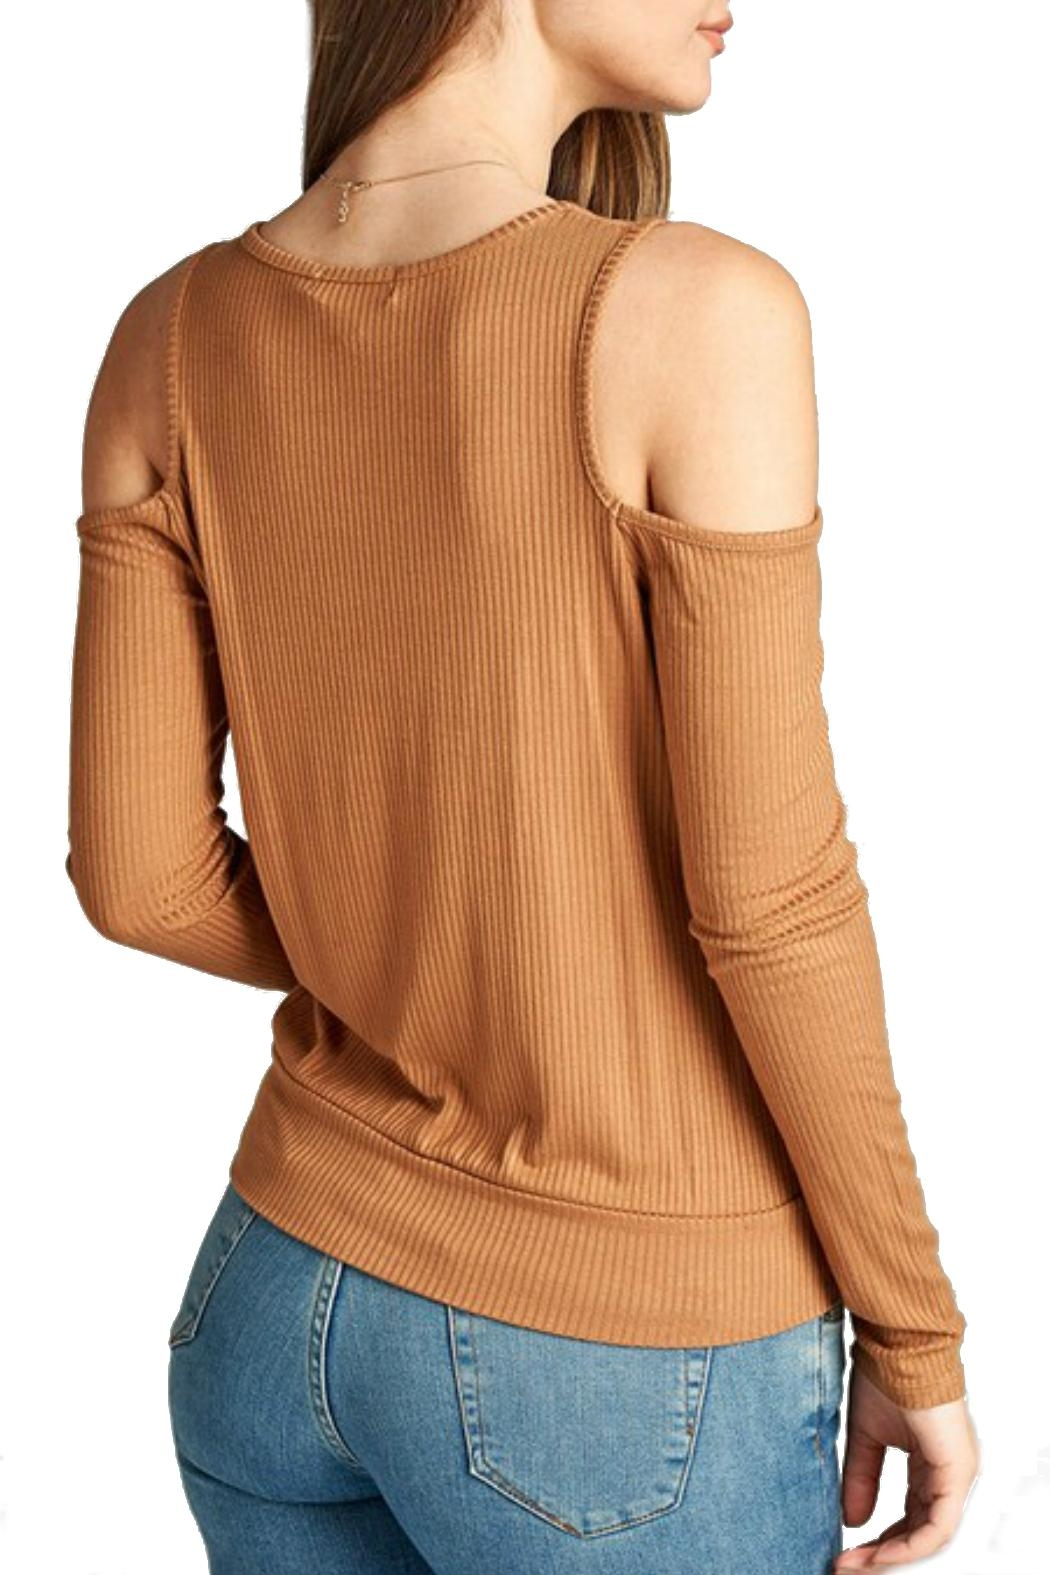 Minx Camel Crossover Top - Front Full Image